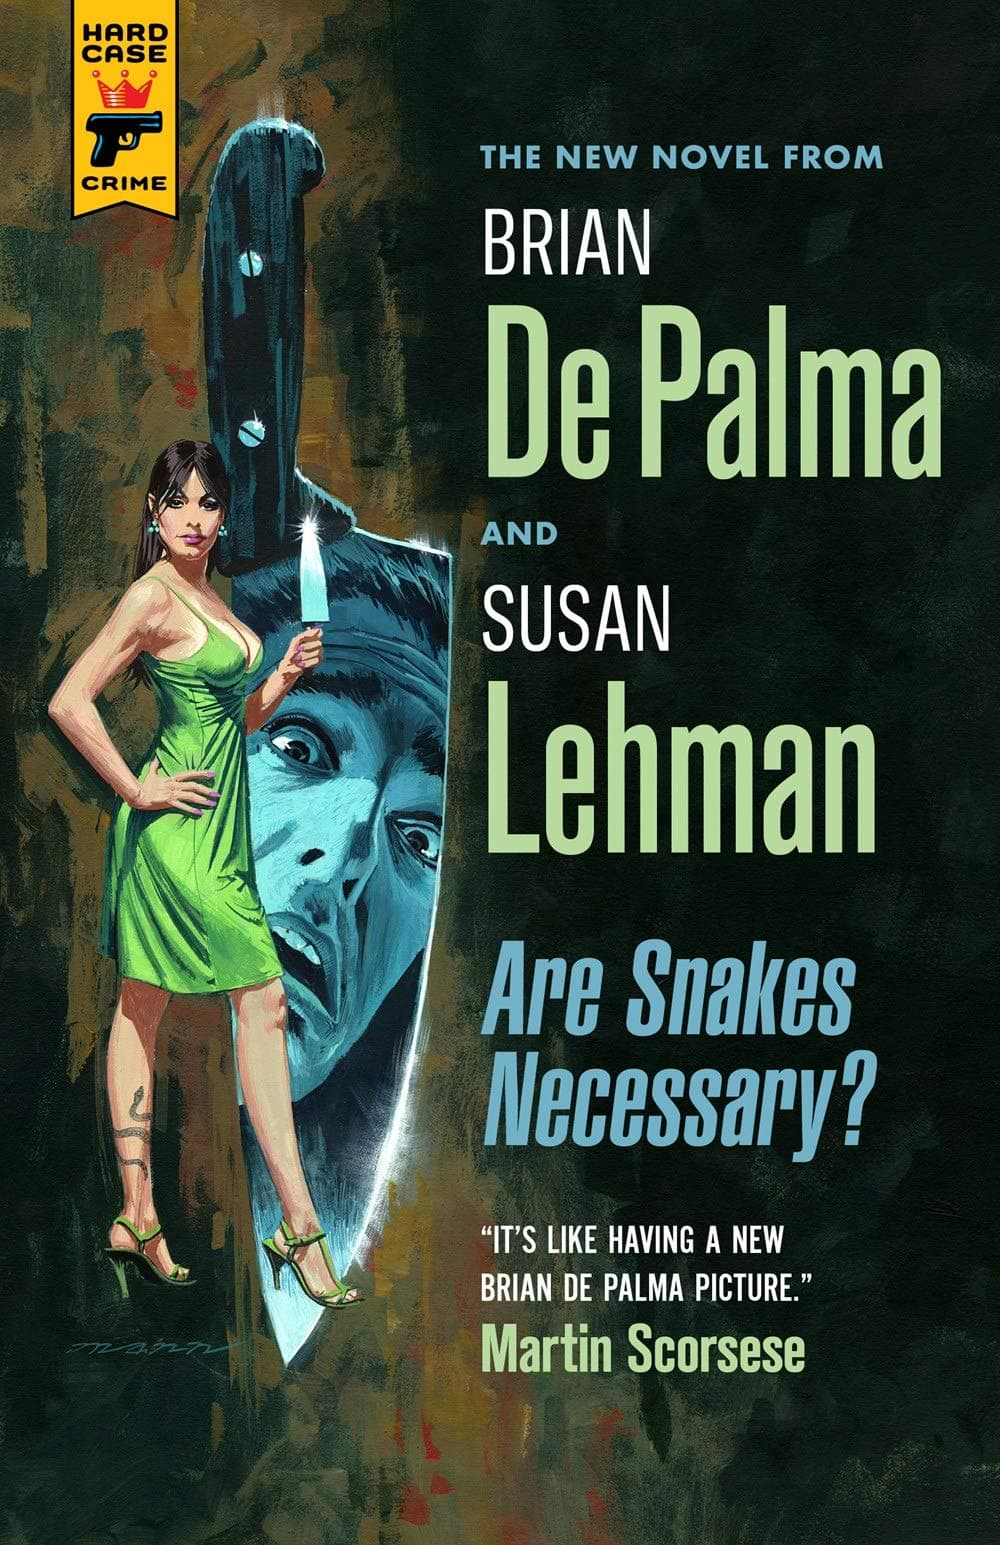 Are Snakes Necessary? (Brian De Palma and Susan Lehman, 2020), Hard Case Crime, 224 pages, cover art by Paul Mann